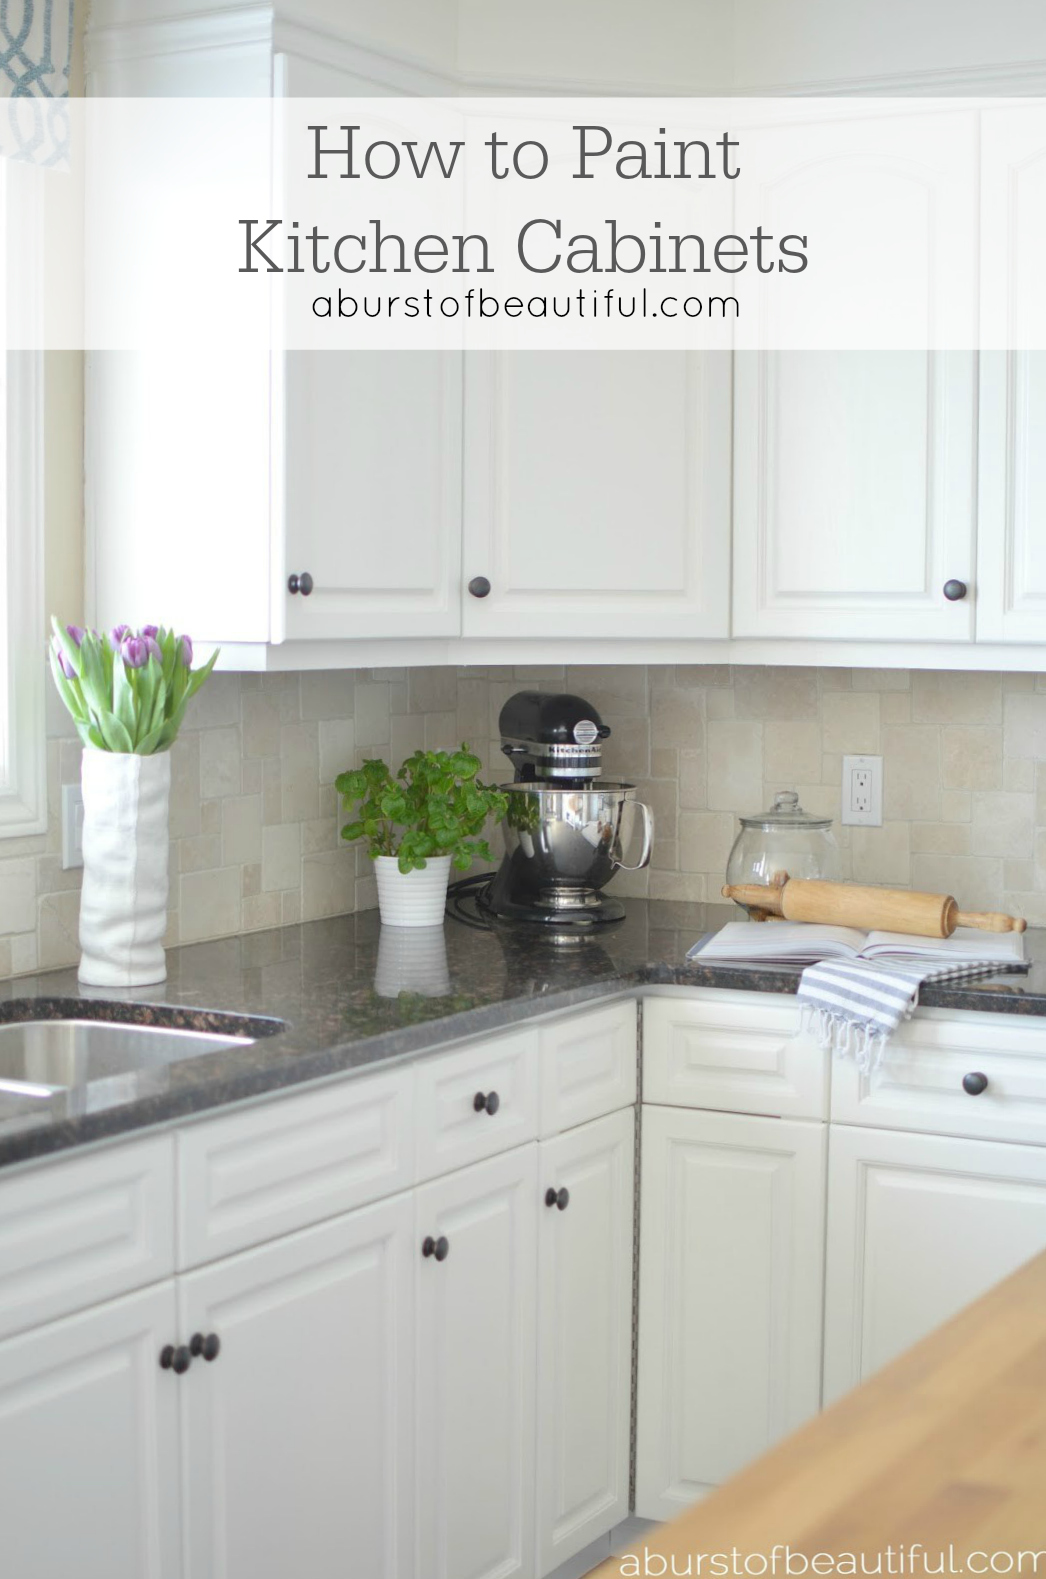 How To Paint Kitchen Cabinets Nick Alicia